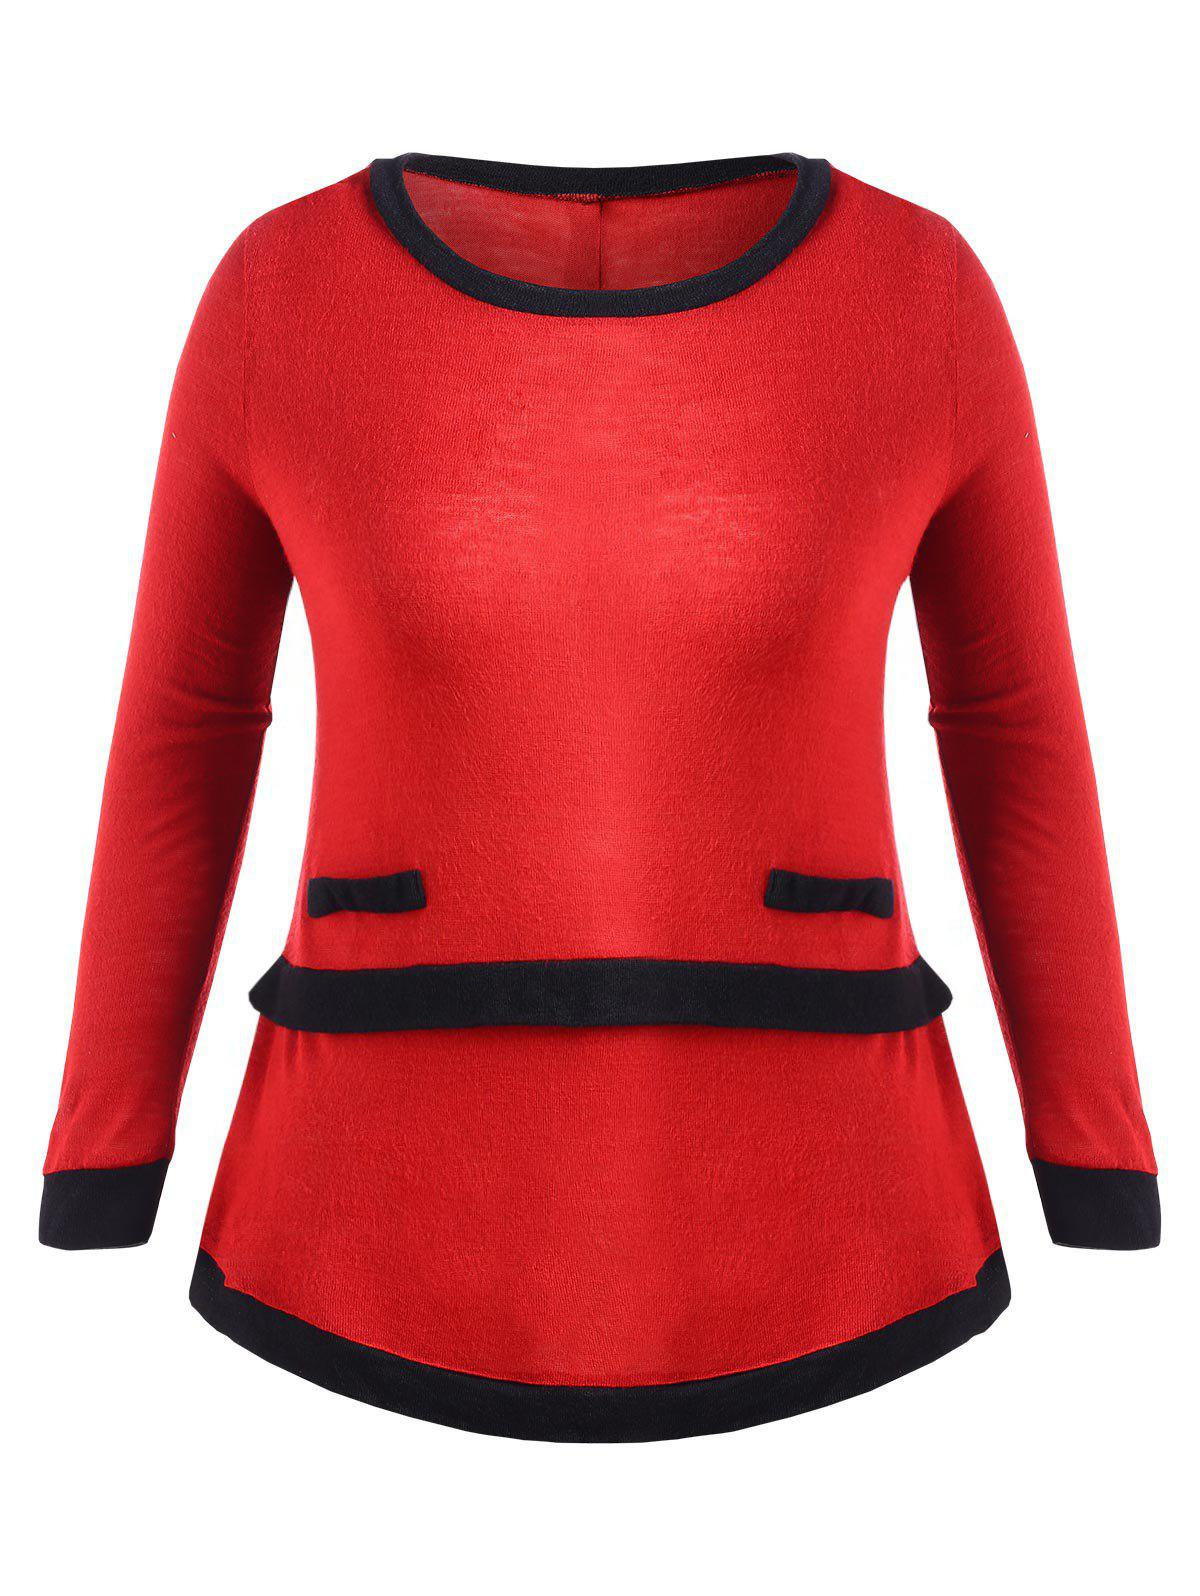 Plus Size Back Button Contrast Trim T-shirt - RED 1X